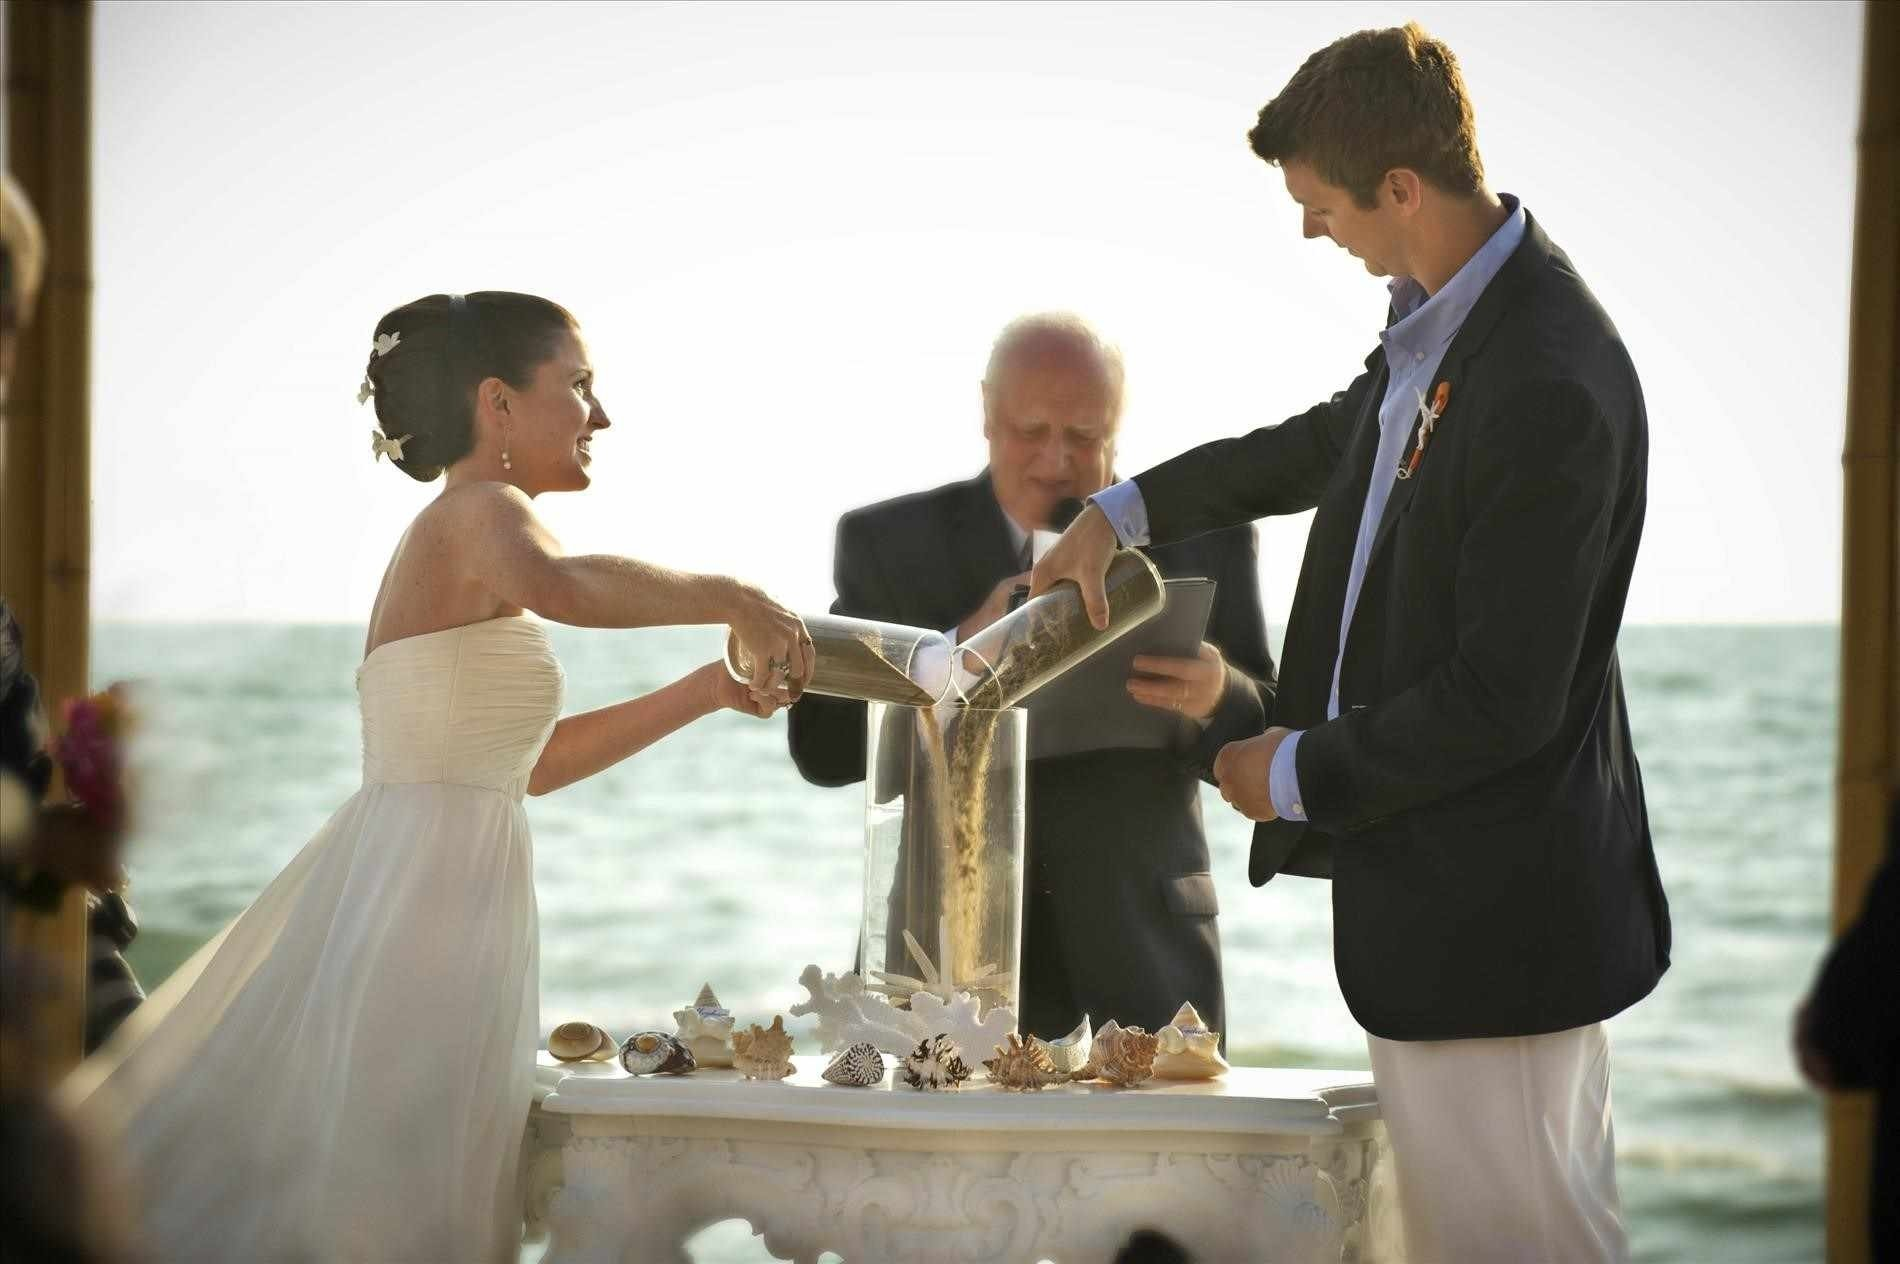 10 Spectacular Ideas Instead Of Unity Candle ideas ceremonies nuptials inside wedding wedding ceremony ideas